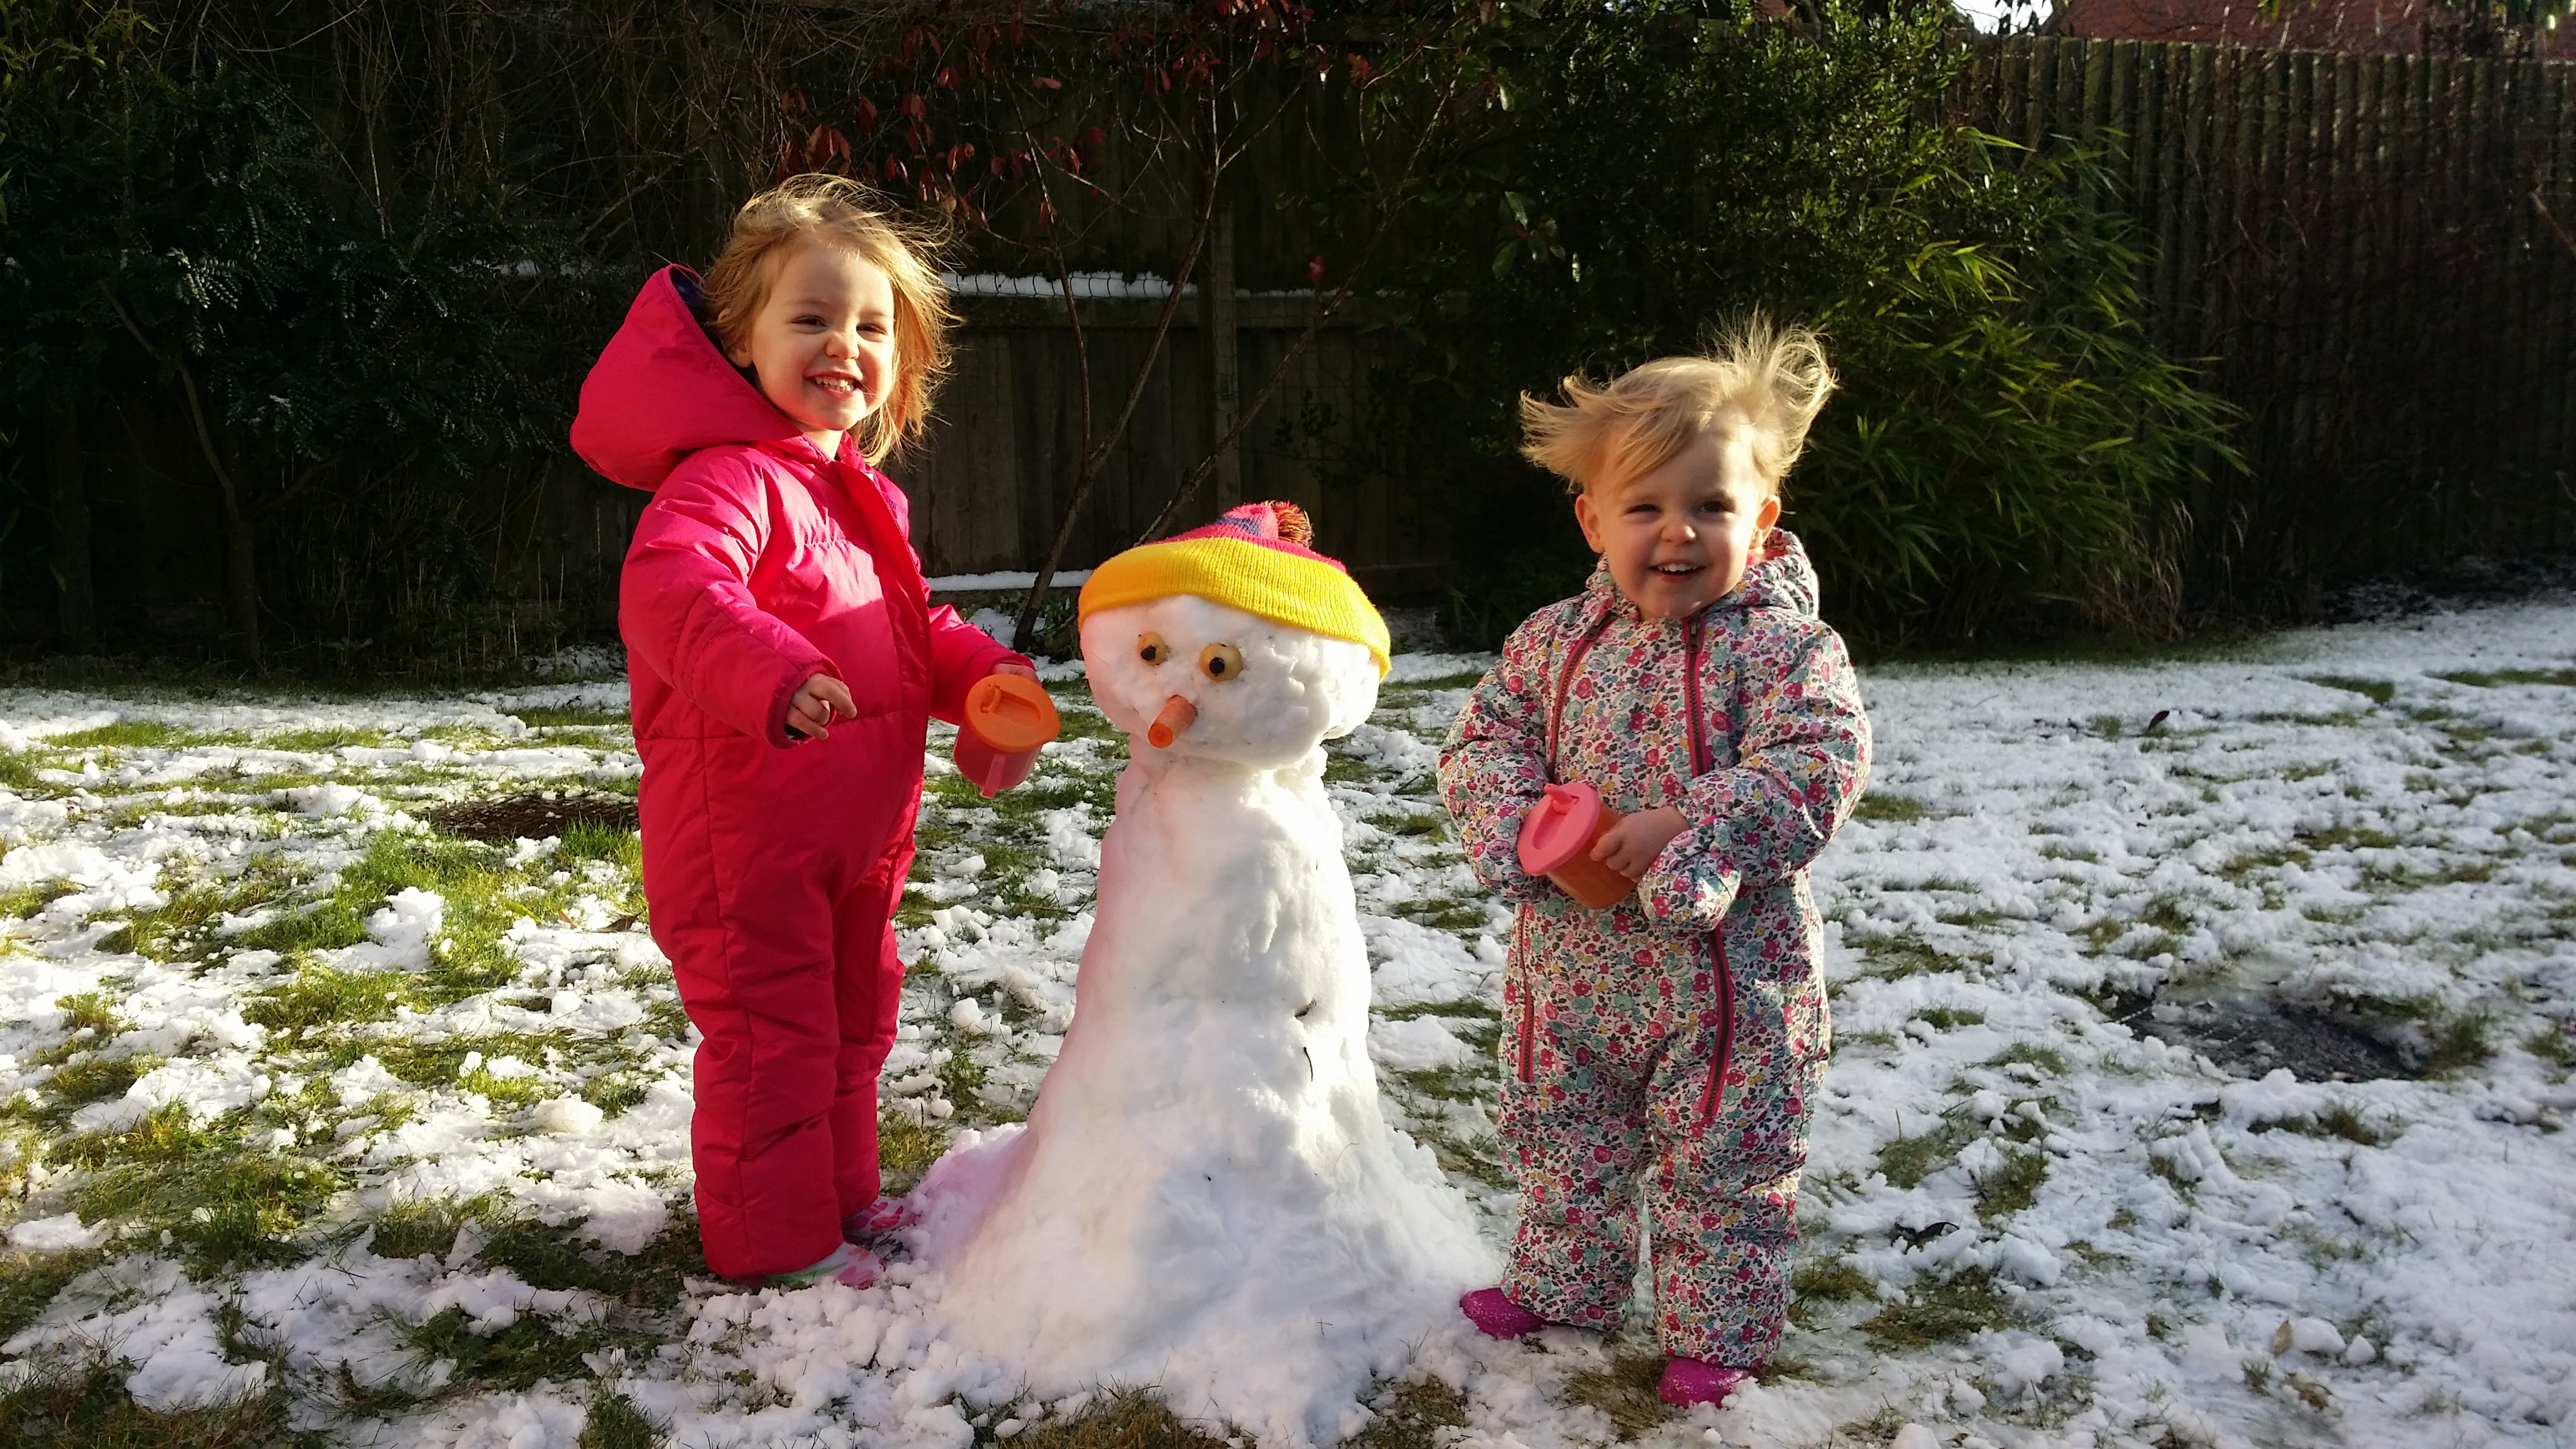 My first post...their first snowman